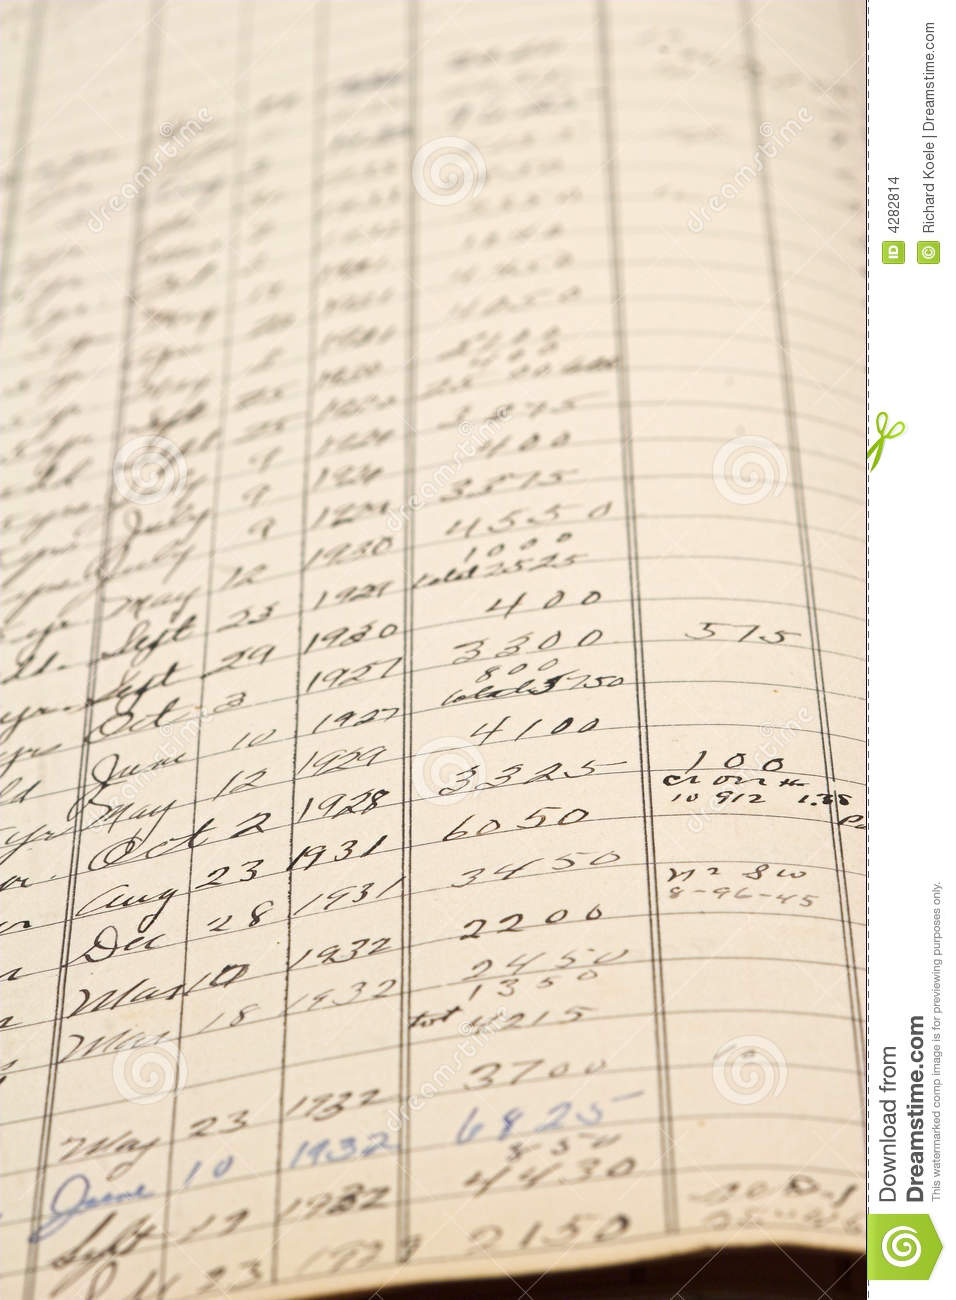 old accounting ledger stock images